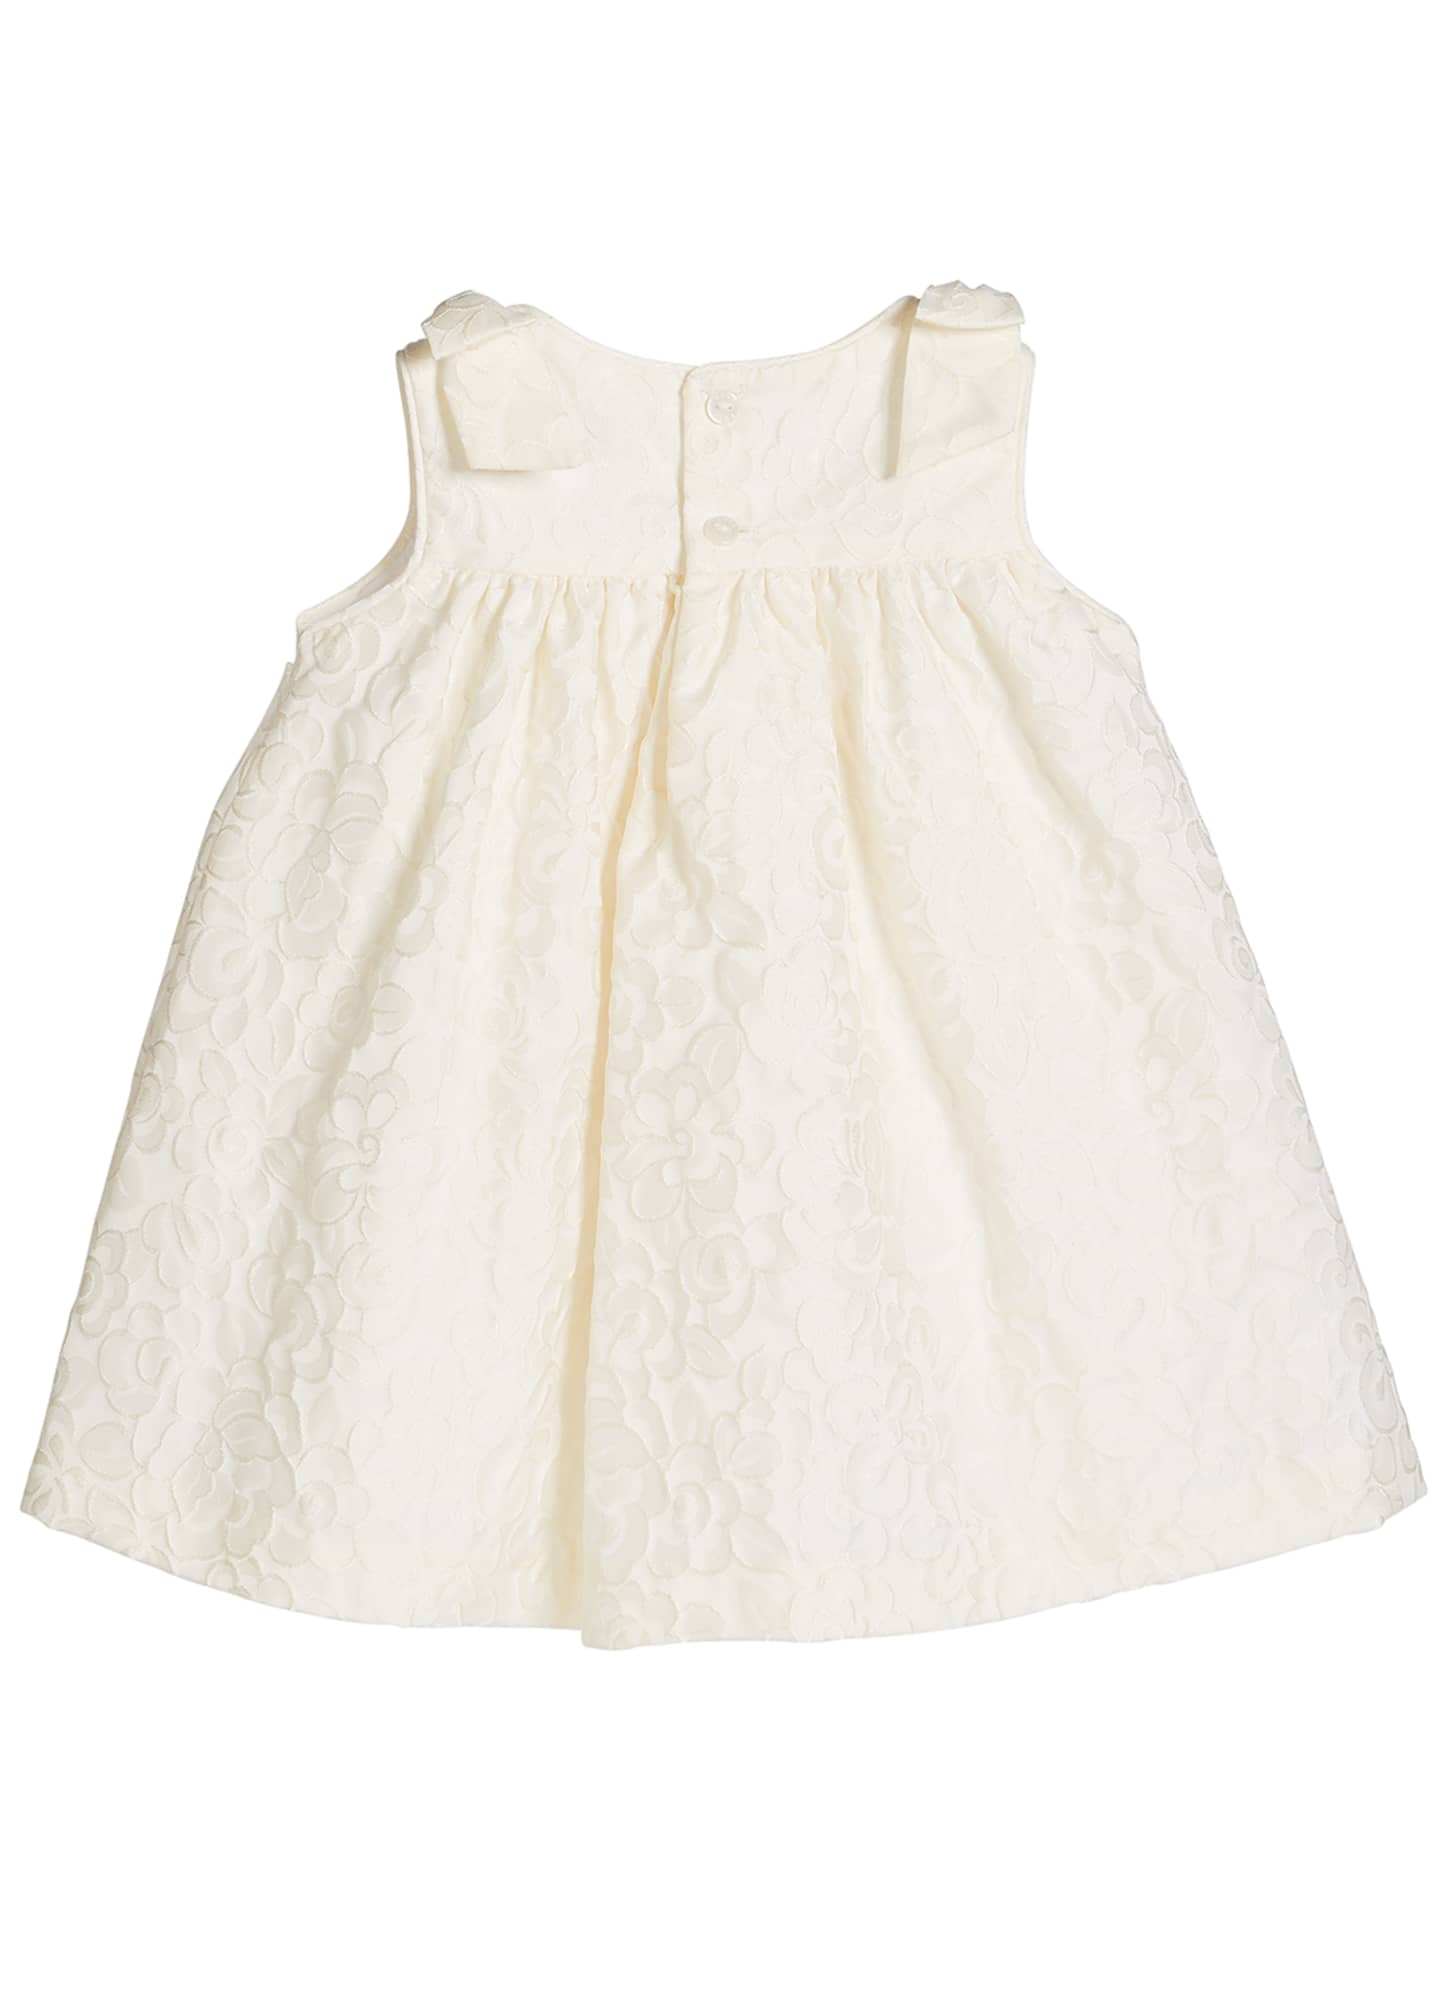 Image 2 of 2: Girl's Ivory Dress with Bow Shoulders, Size 3-18 Months